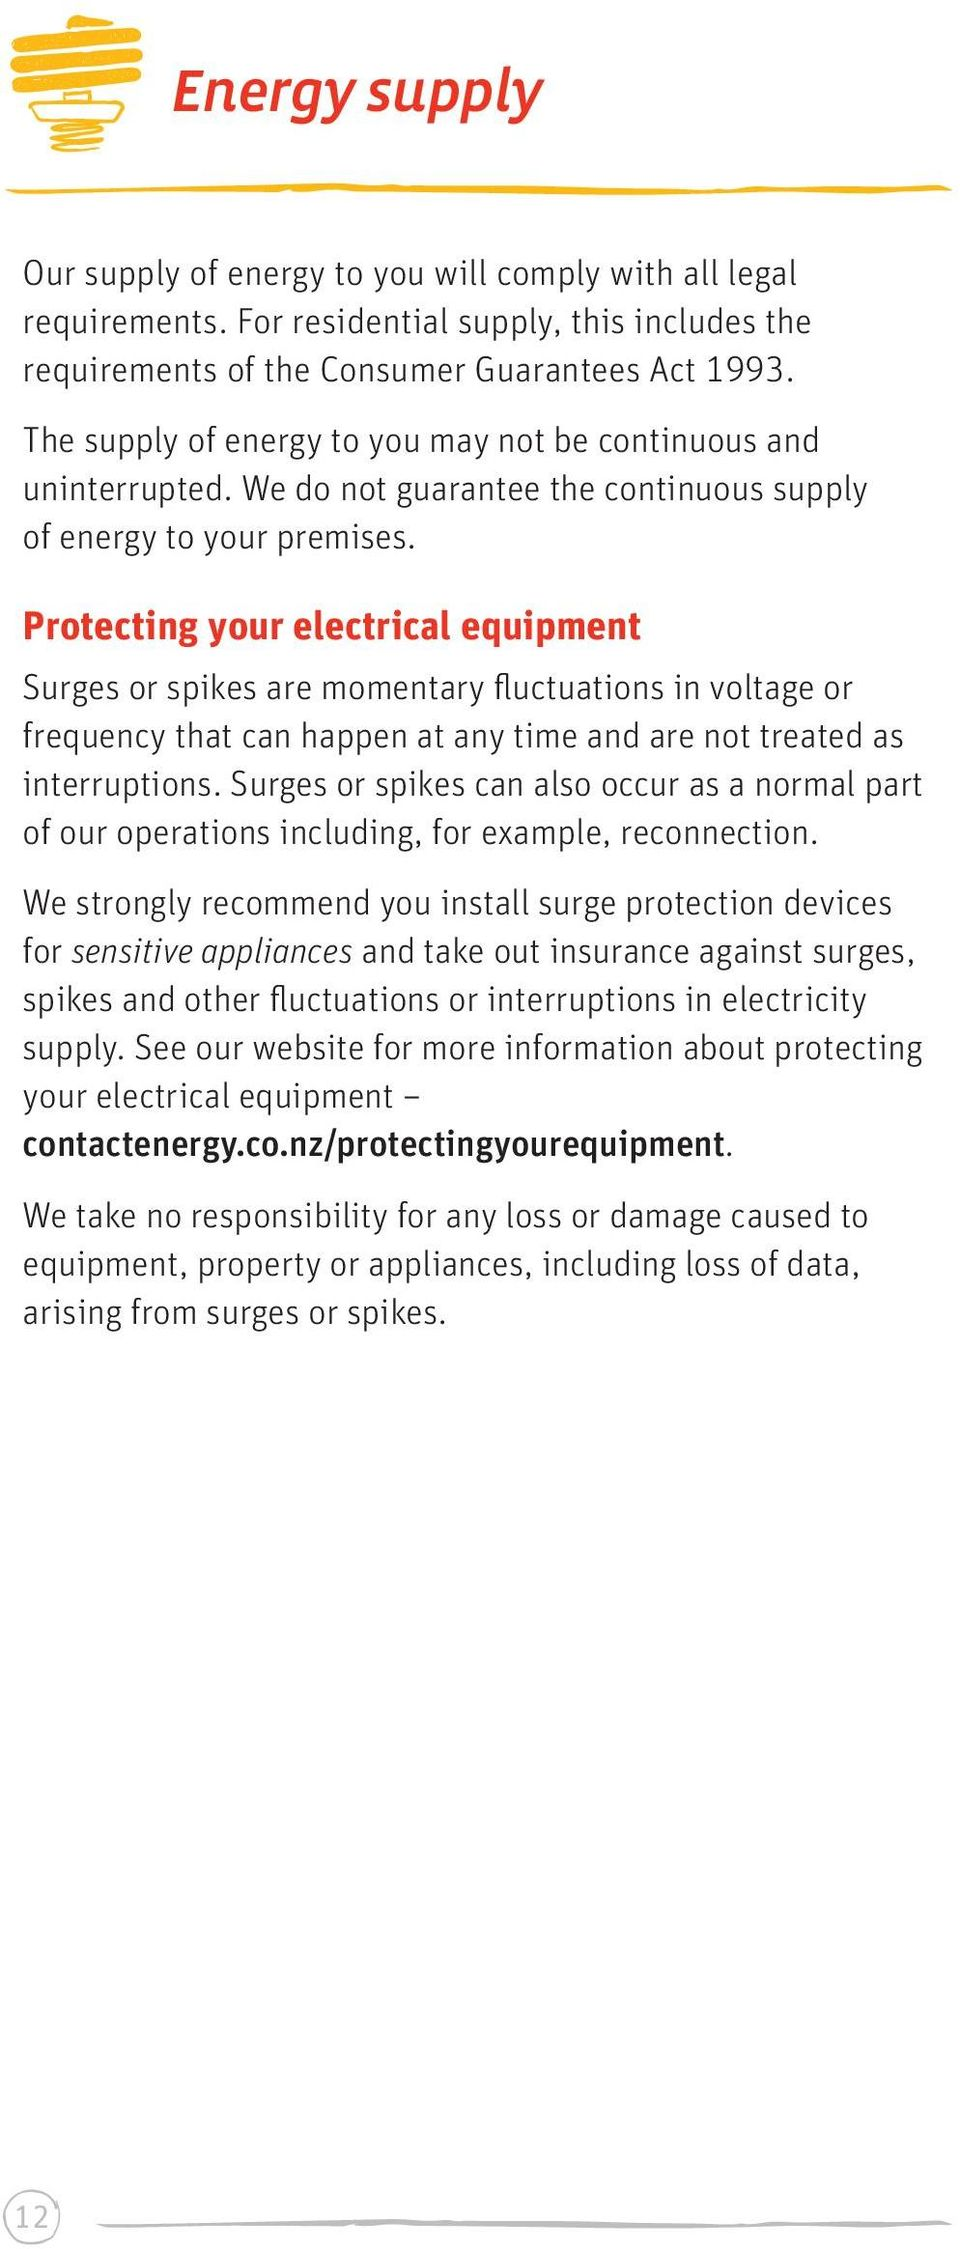 Protecting your electrical equipment Surges or spikes are momentary fluctuations in voltage or frequency that can happen at any time and are not treated as interruptions.